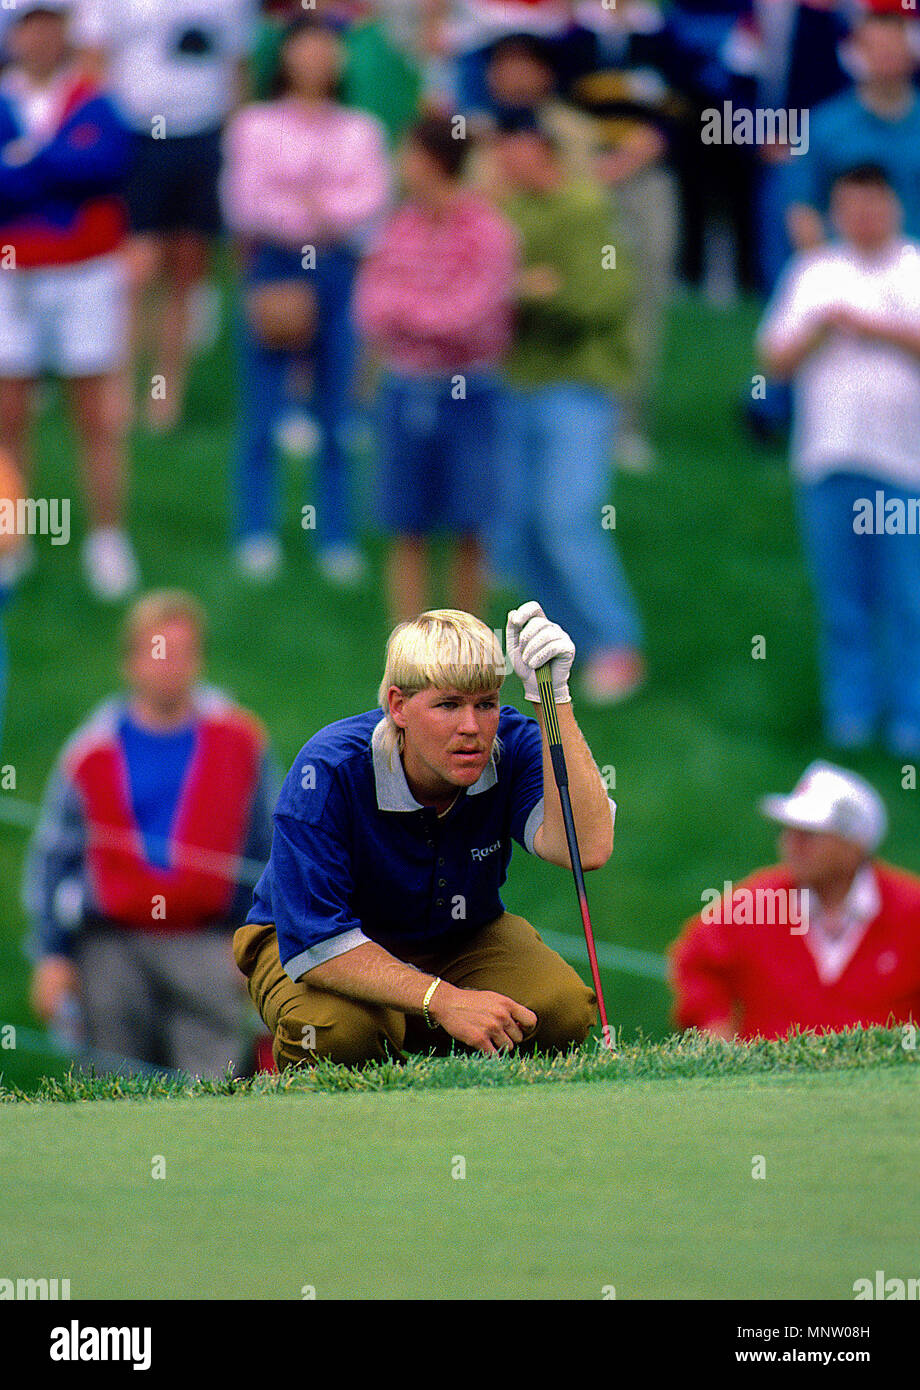 Potomac. Maryland, USA, May 28, 1992 John Daly plays during the Kemper Open at the TPC at Avenel in Potomac Maryland. - Stock Image